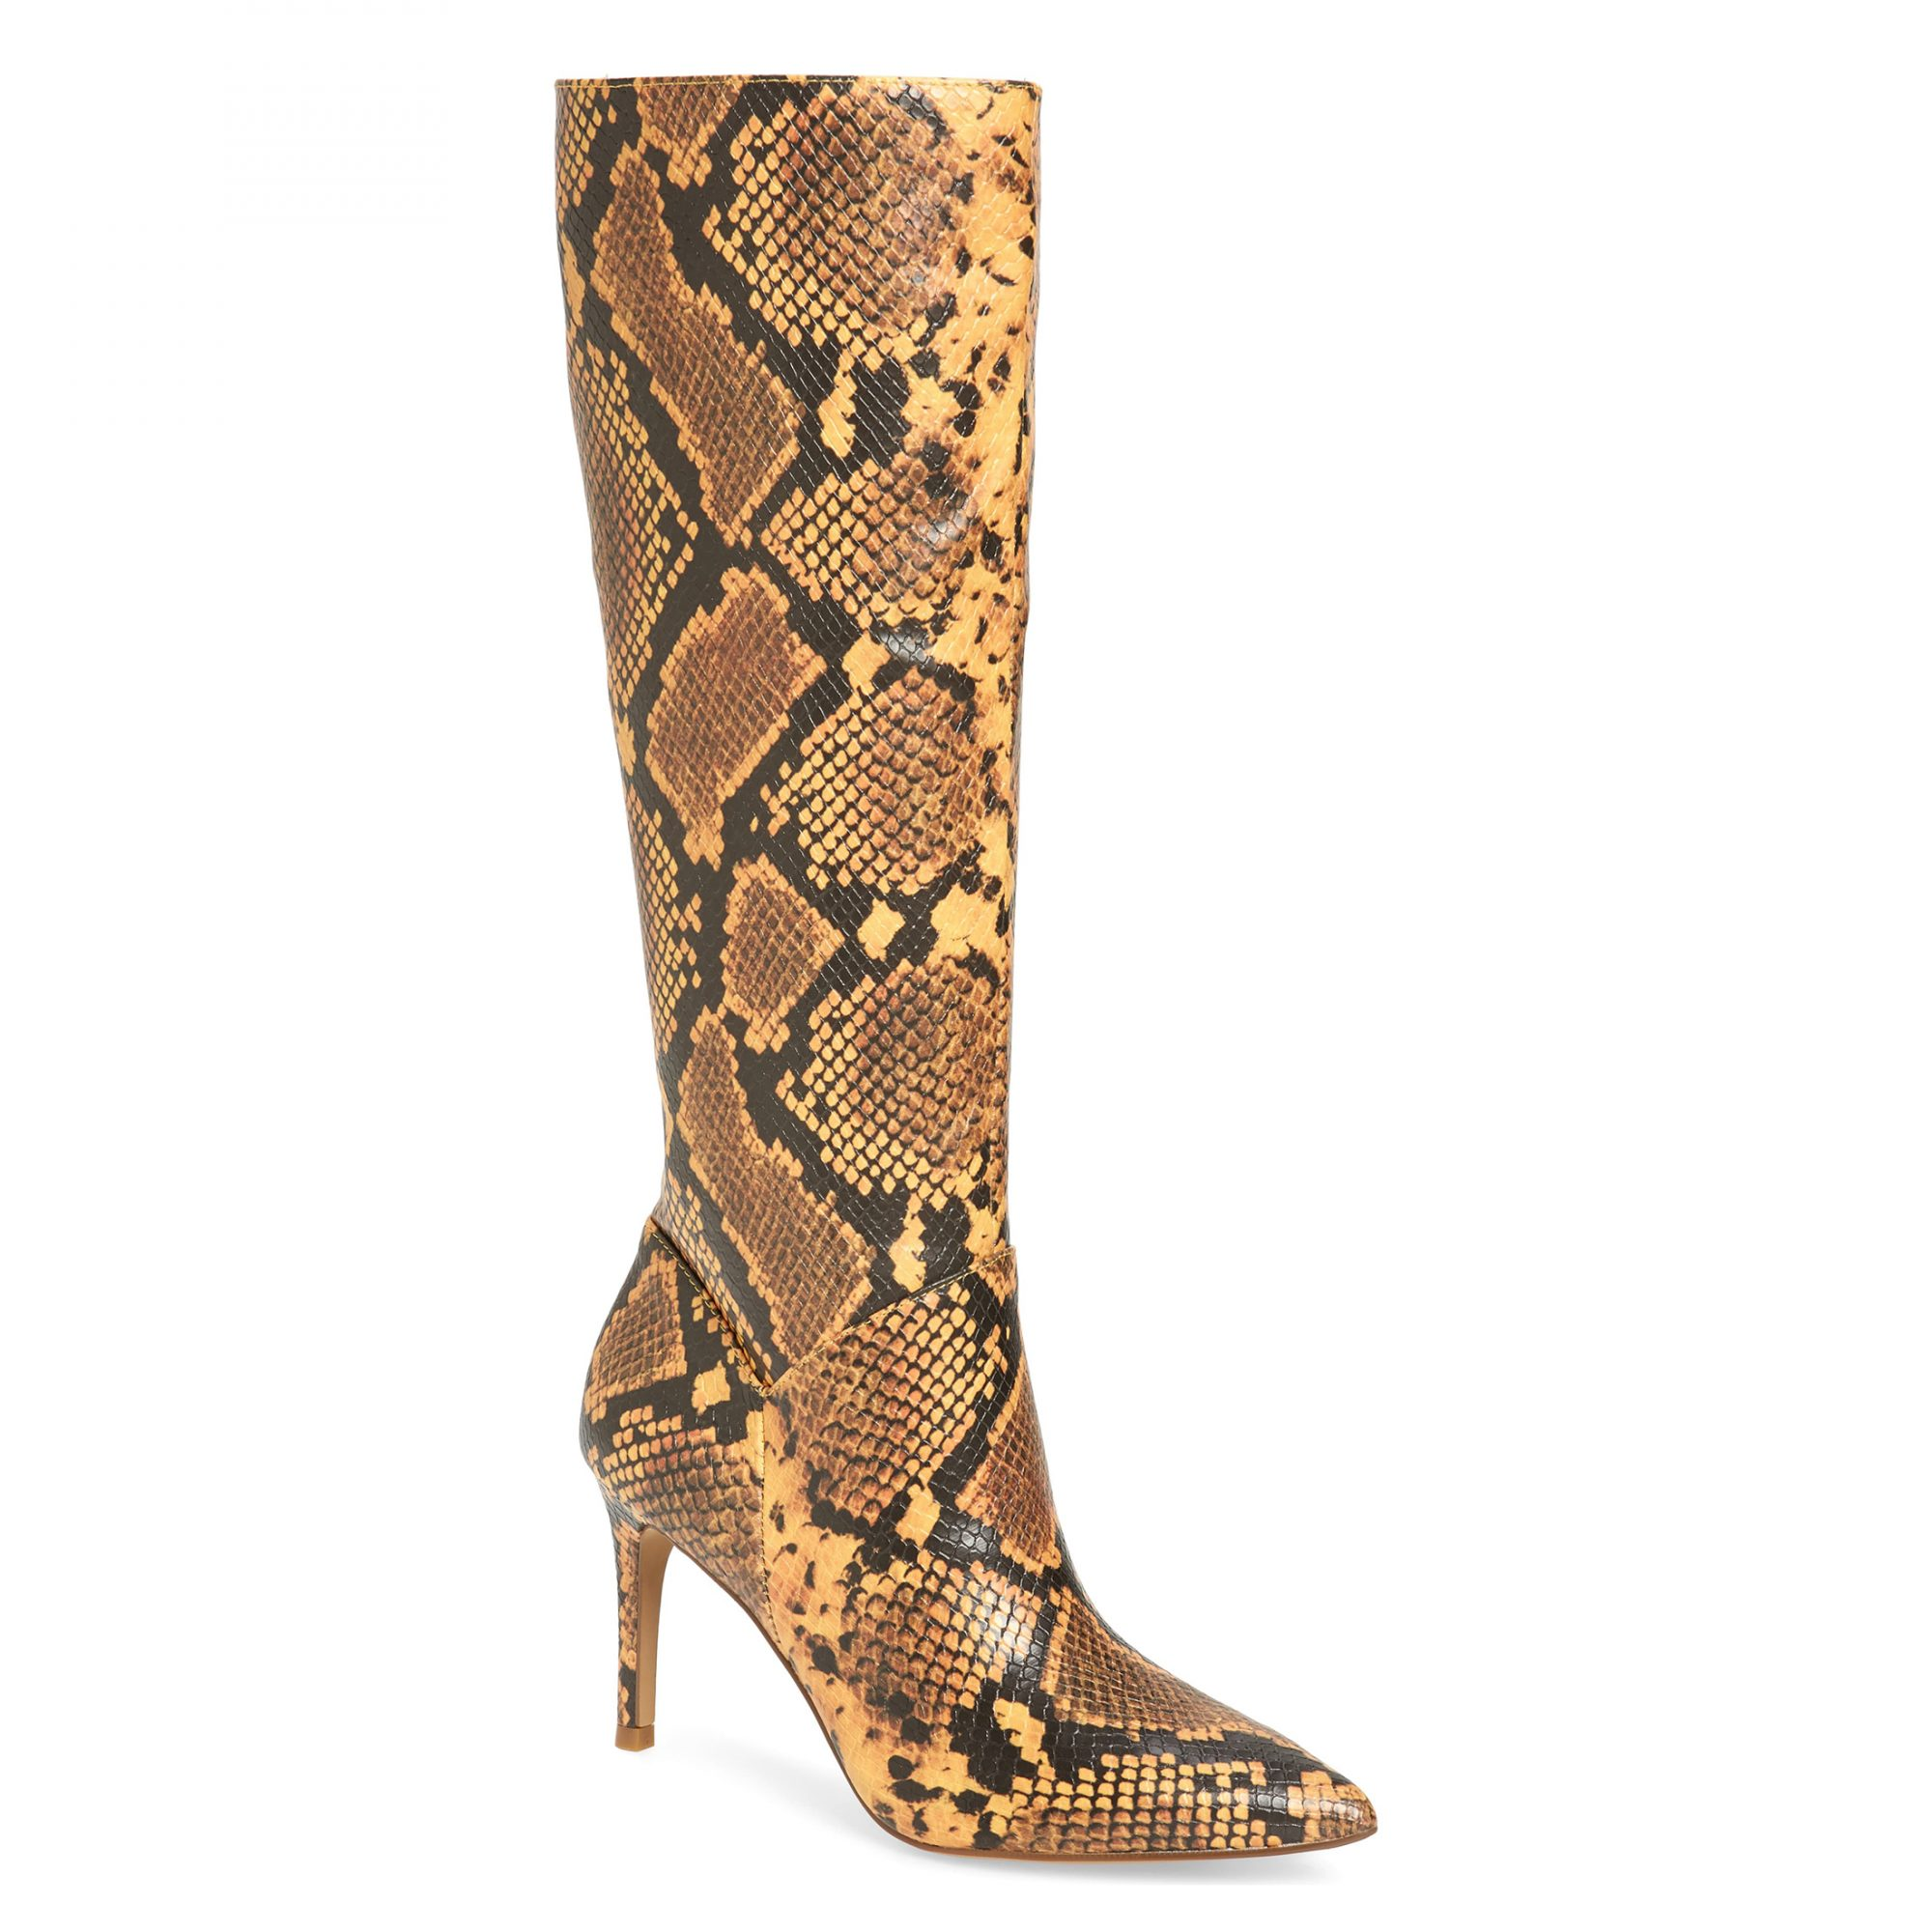 Steve Madden Kinga Knee High Boot in Yellow Snake